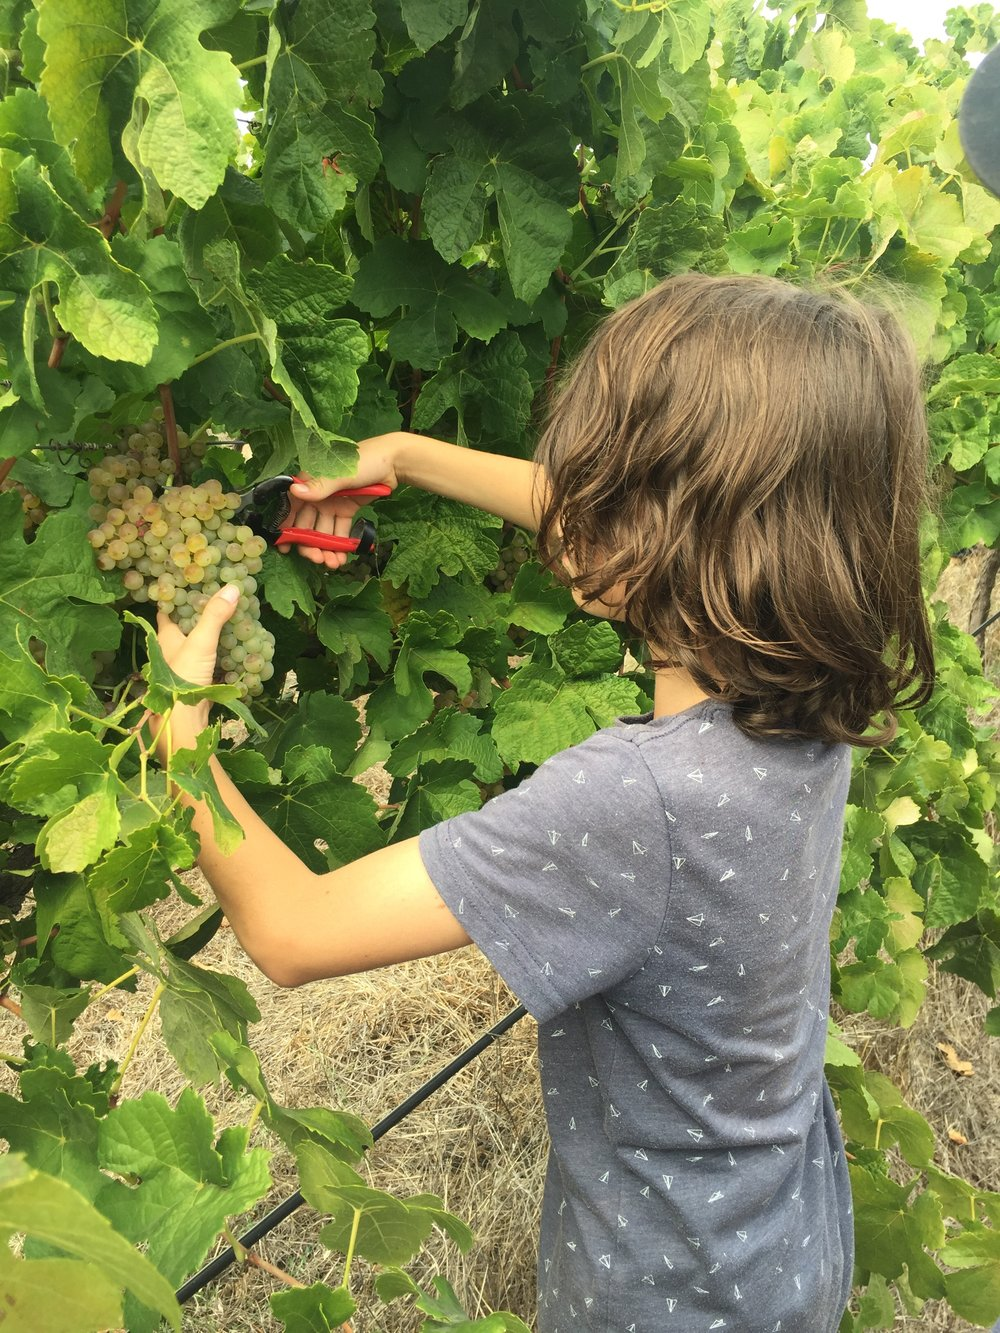 Family put to work in the vineyard